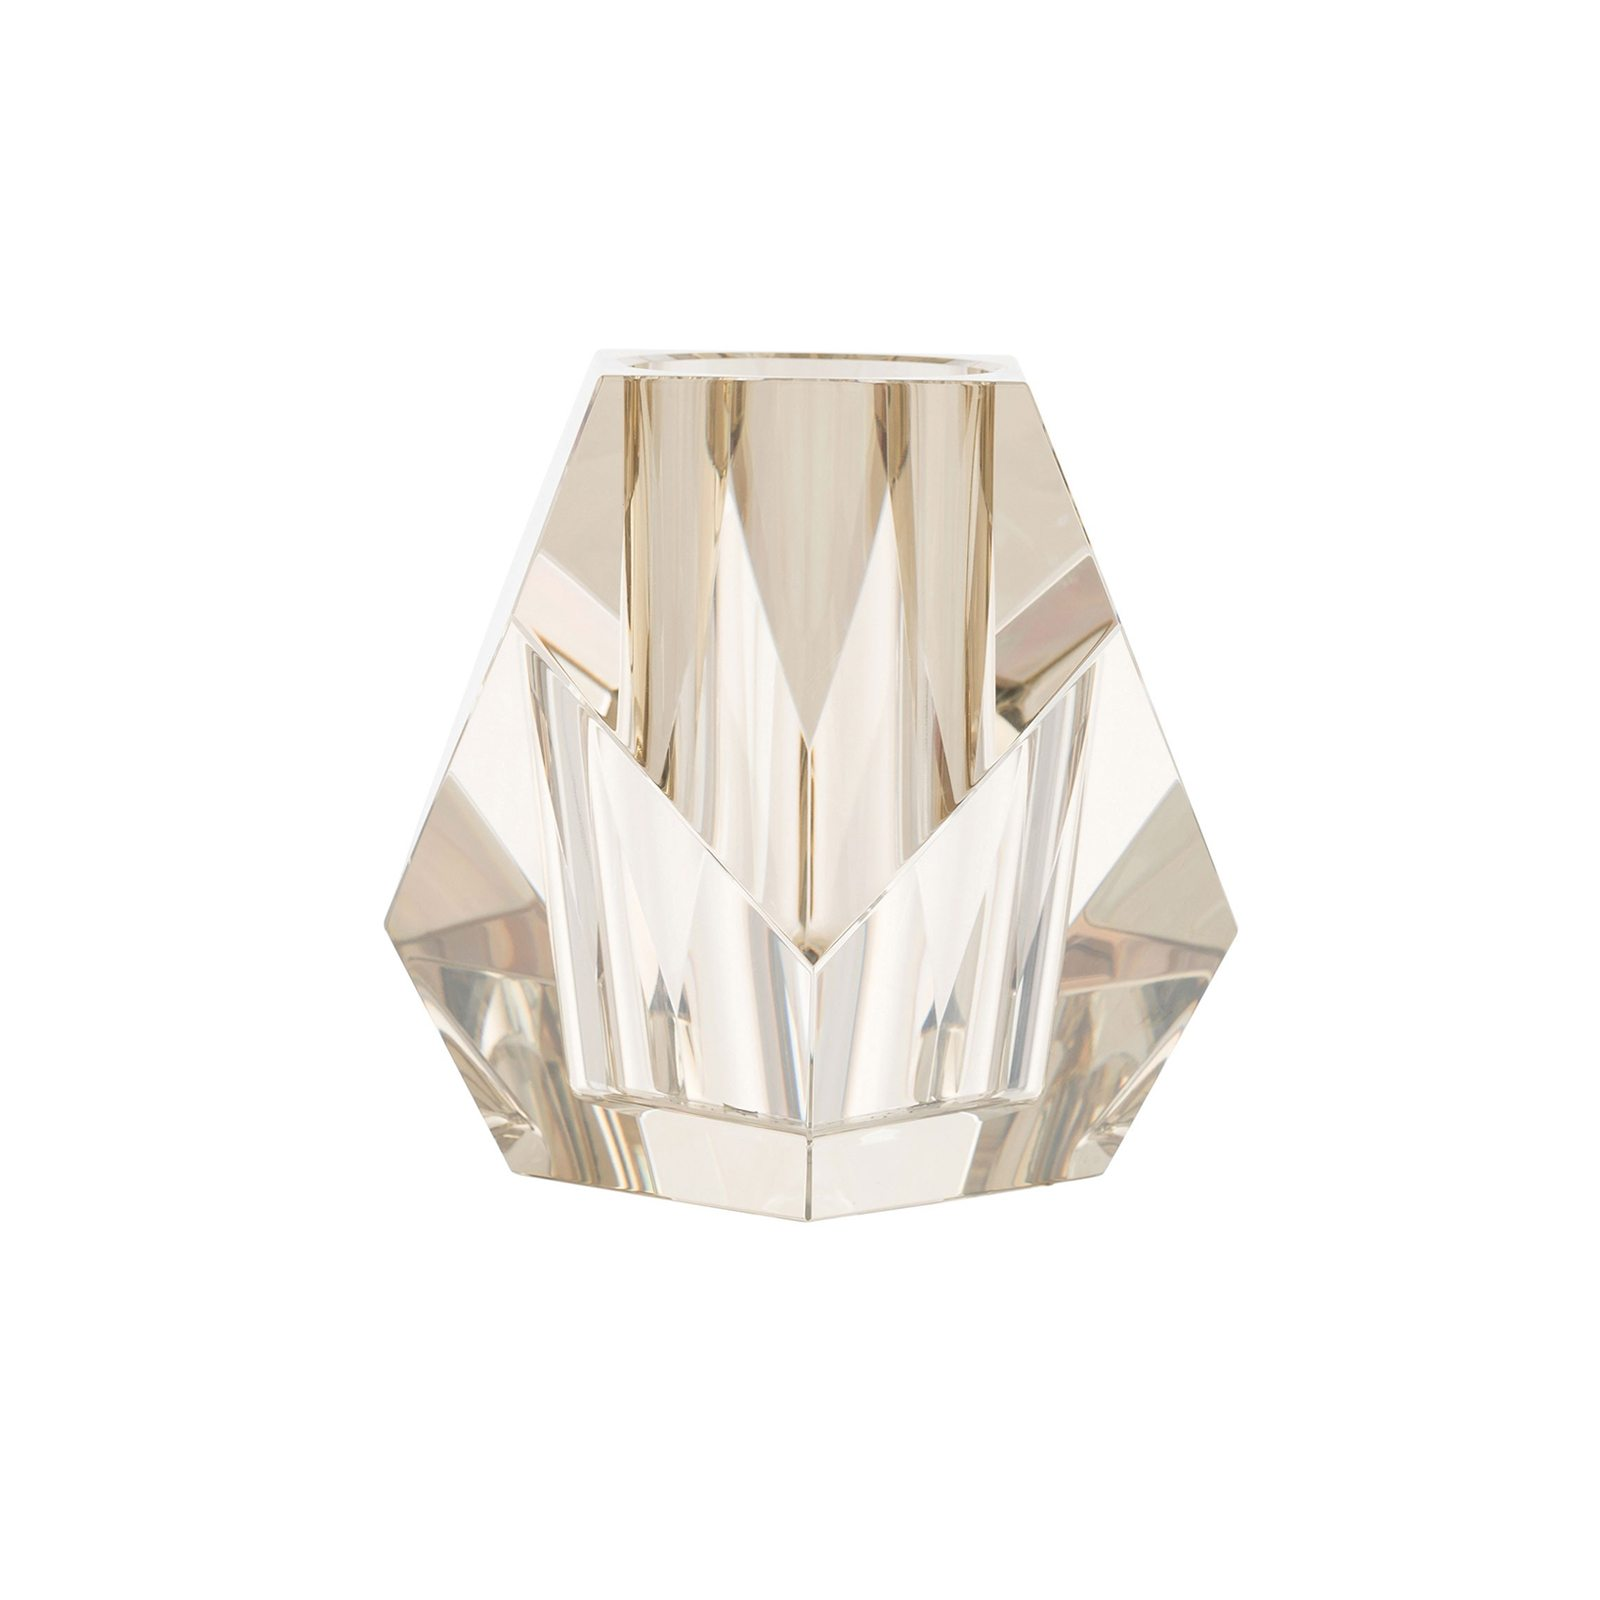 Shard Vase by Bonham & Bonham